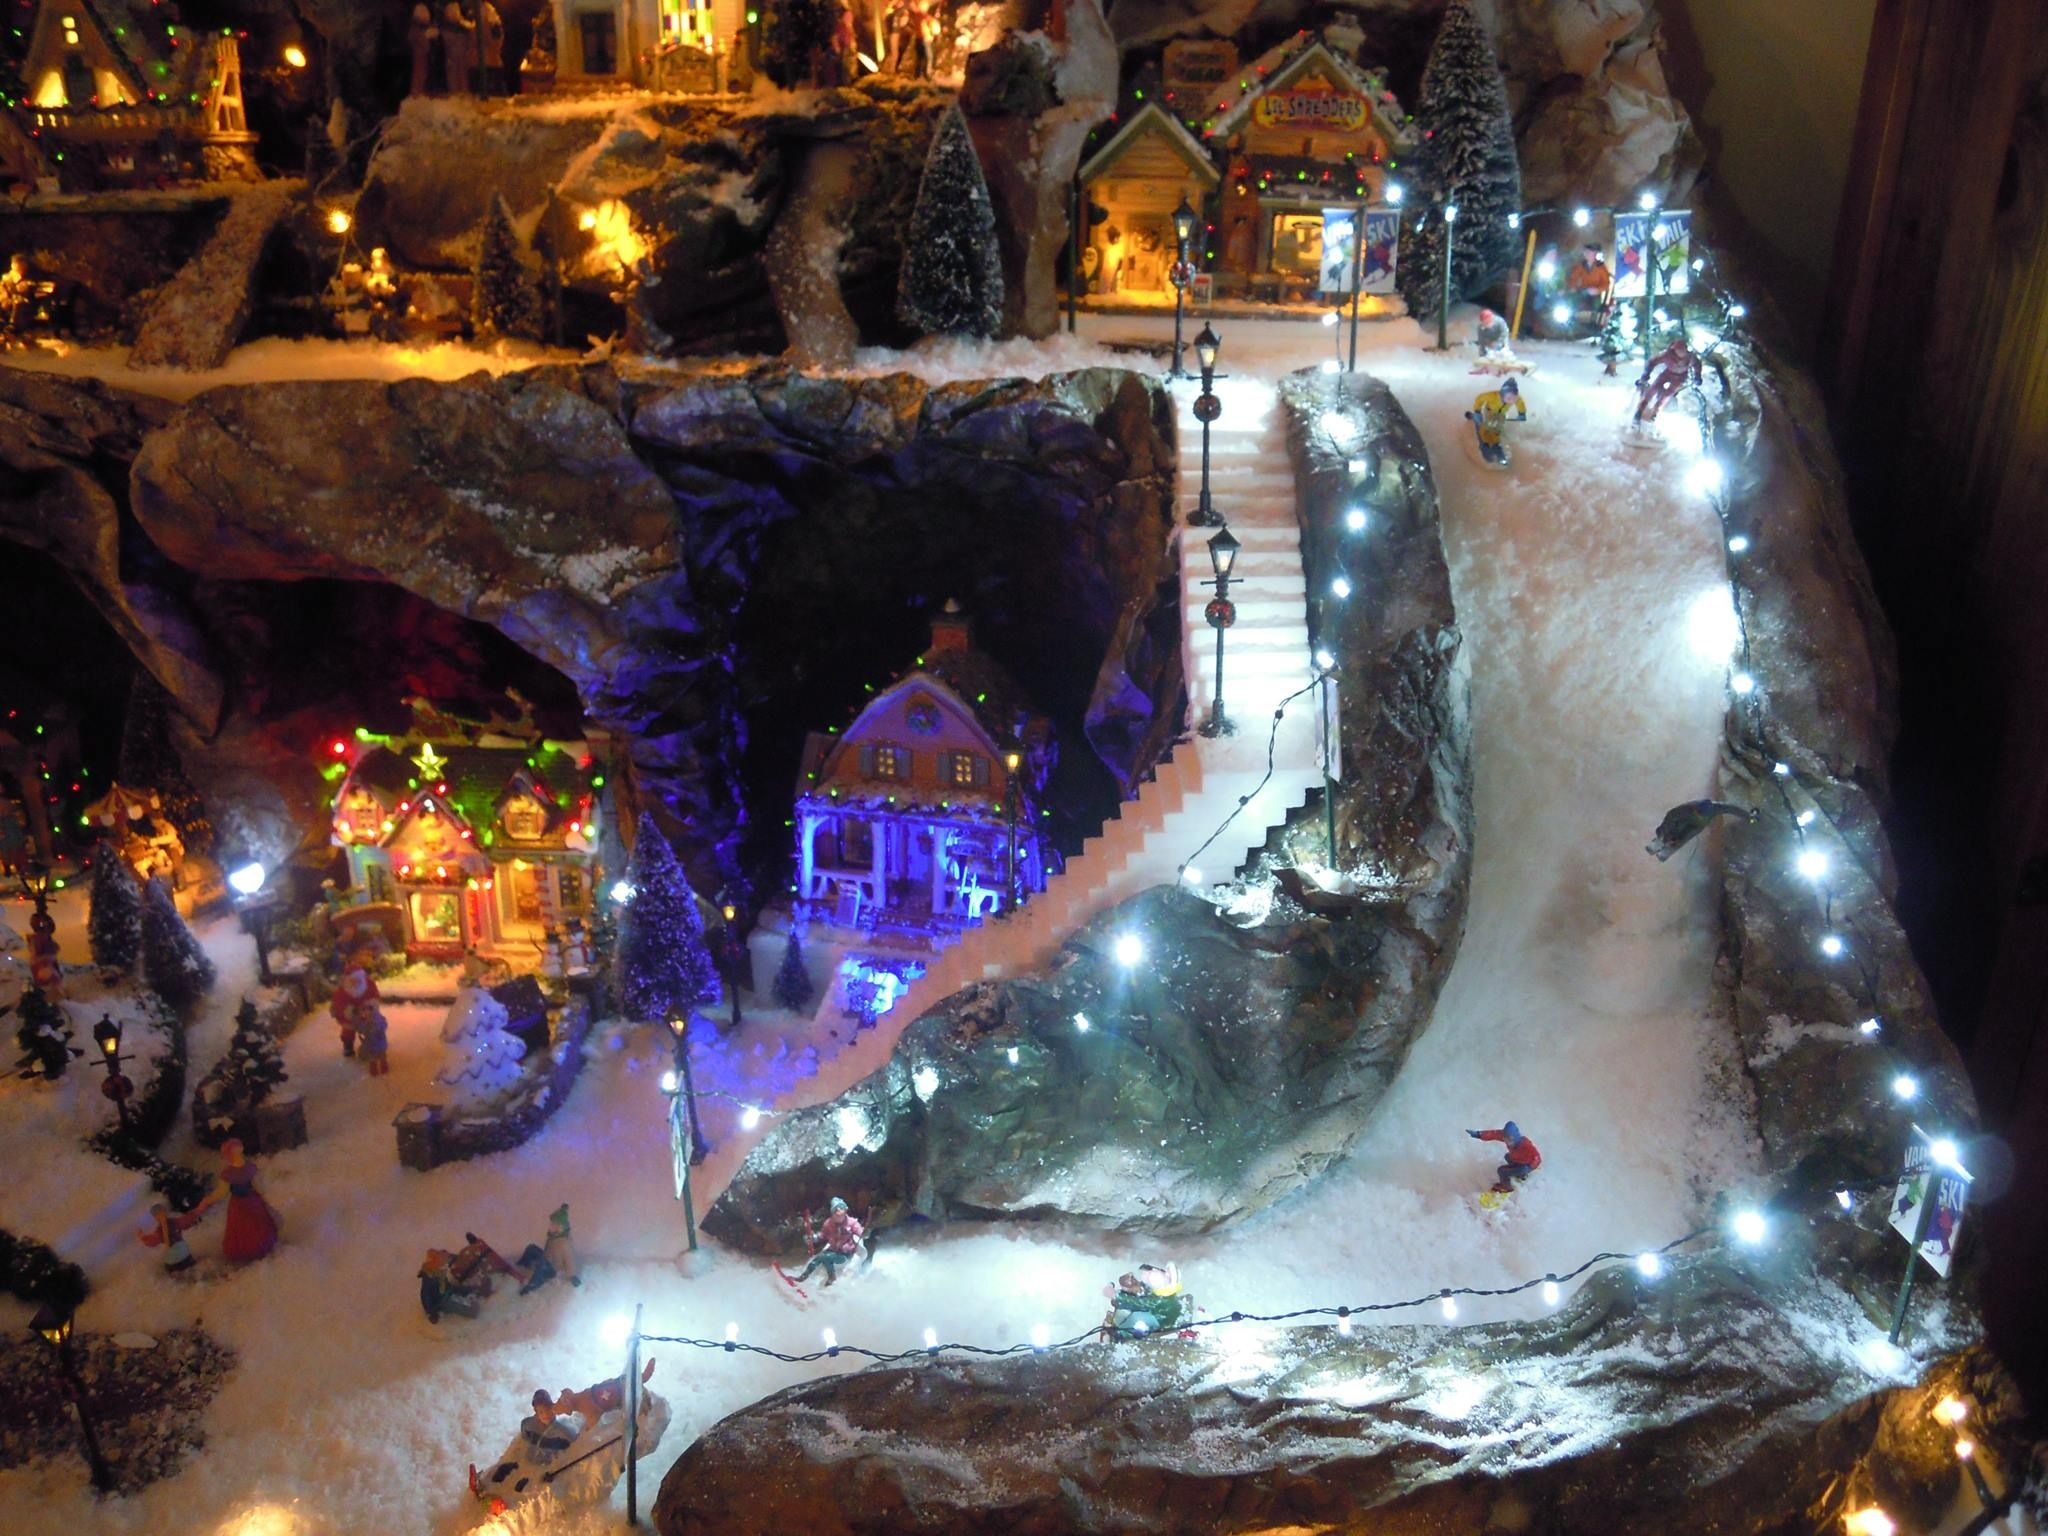 Christmas Village Ski Lift For Sale.New Design For Ski Slope Steeper Too Dept 56